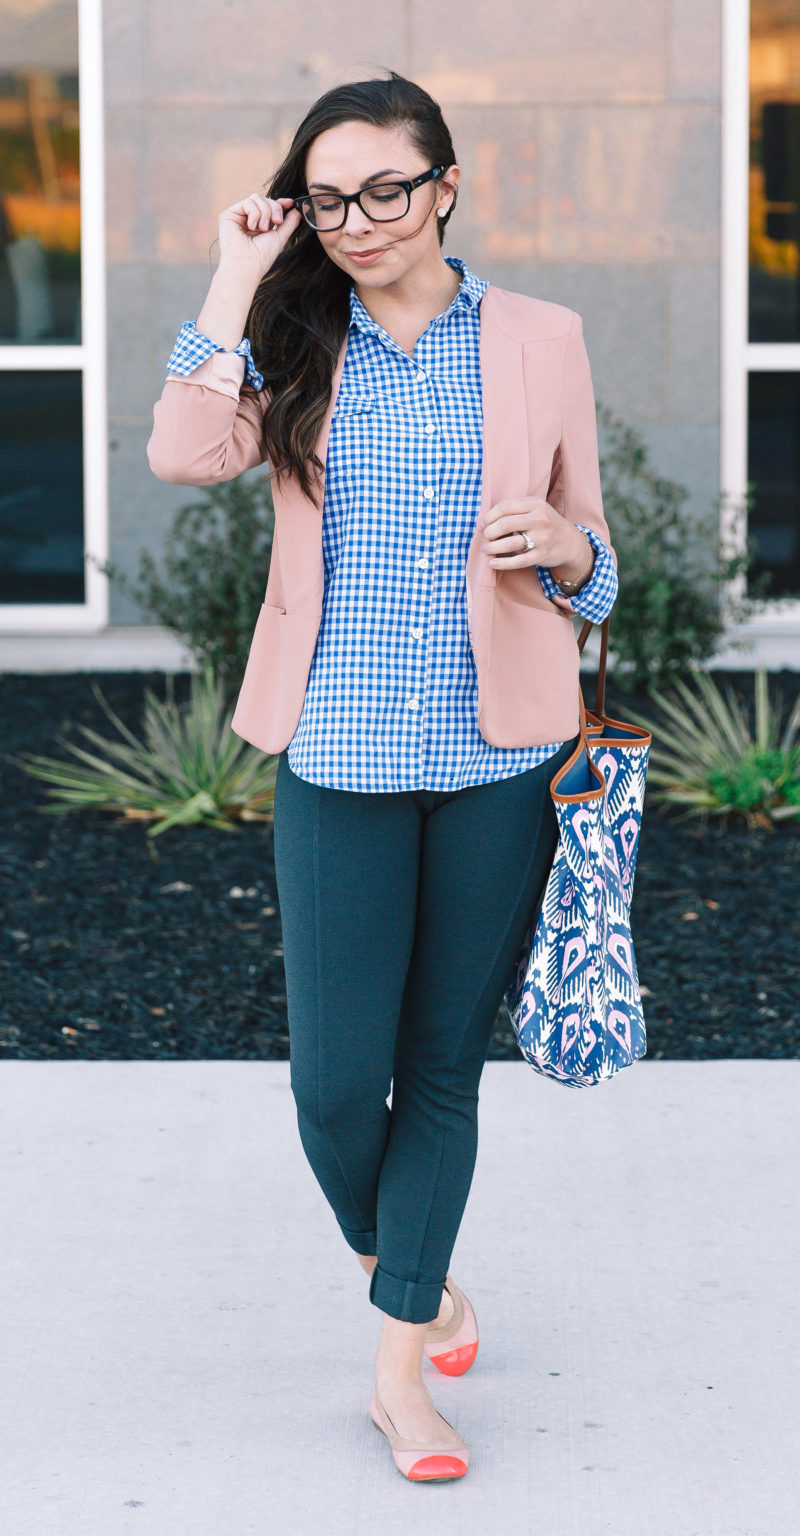 """Blushing Blues"" Thrifted Modest Business Casual Outfit #1: Gingham & Blush Blazer"